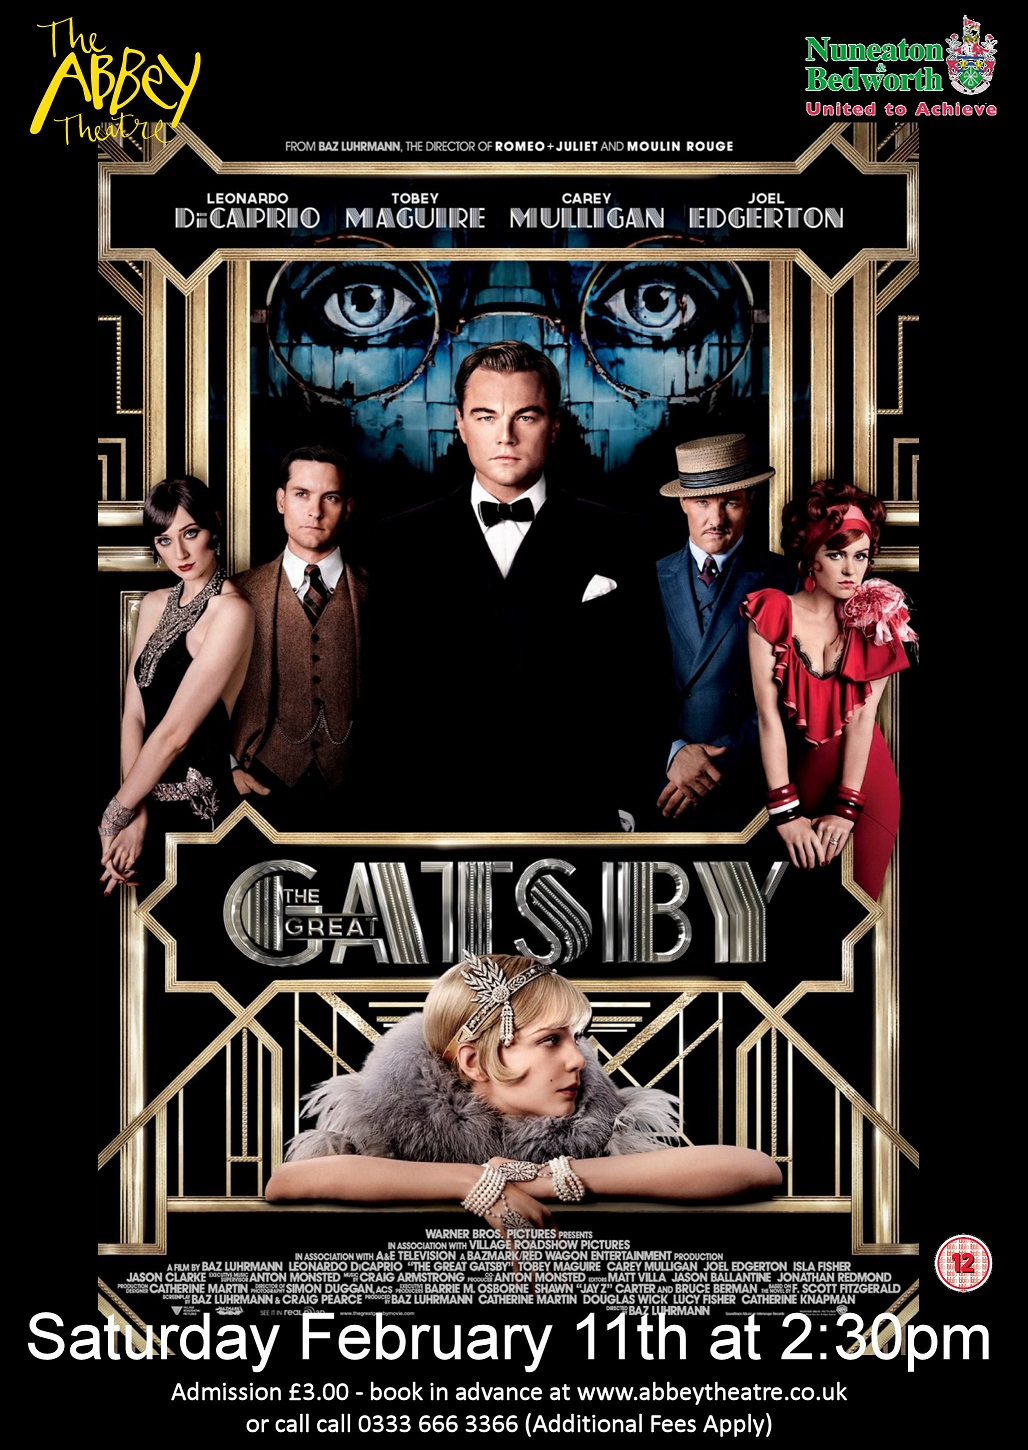 """the events of the past of nick carraway in the great gatsby a novel by f scott fitzgerald As the great gatsby secured its place in the american canon, nick  carraway  an unreliable narrator, the book is commonly taught  interestingly enough, f  scott fitzgerald does not seem to have  history of unreliability   conclusions regarding carraway having """"minor involvement in the events."""